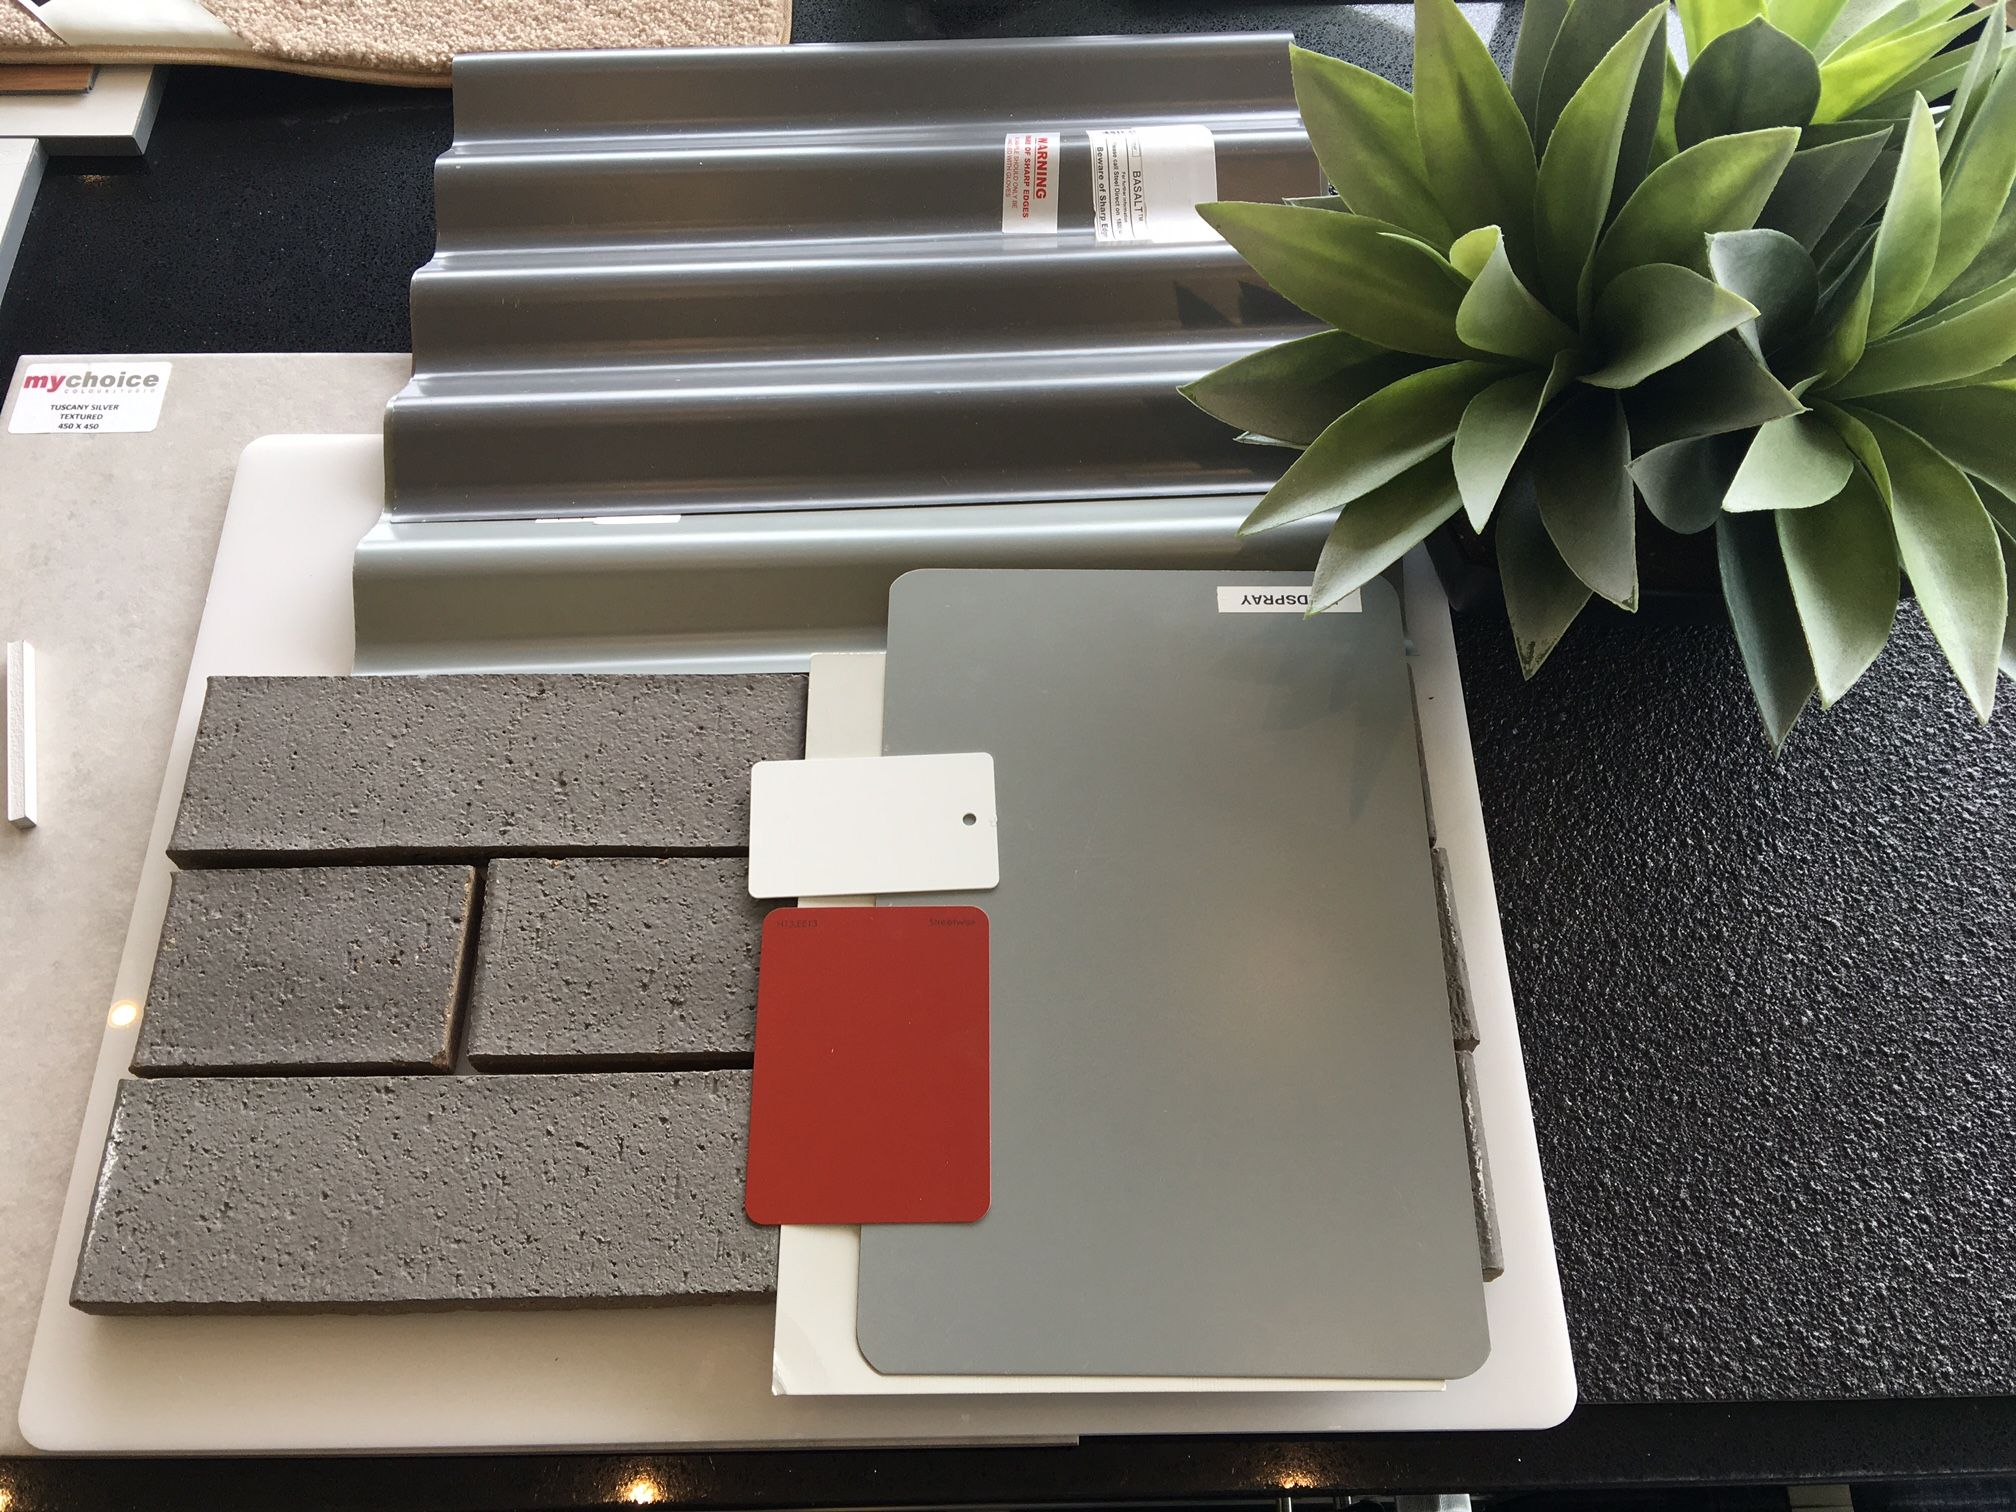 Colorbond roofing colours pictures to pin on pinterest - Ironstone Colorbond Roof Grey Pebble Cladding Sand Dune Brick Moodboardsandcolourtrends Roofing Roofingcolours Pinterest Bricks Roof Colors And